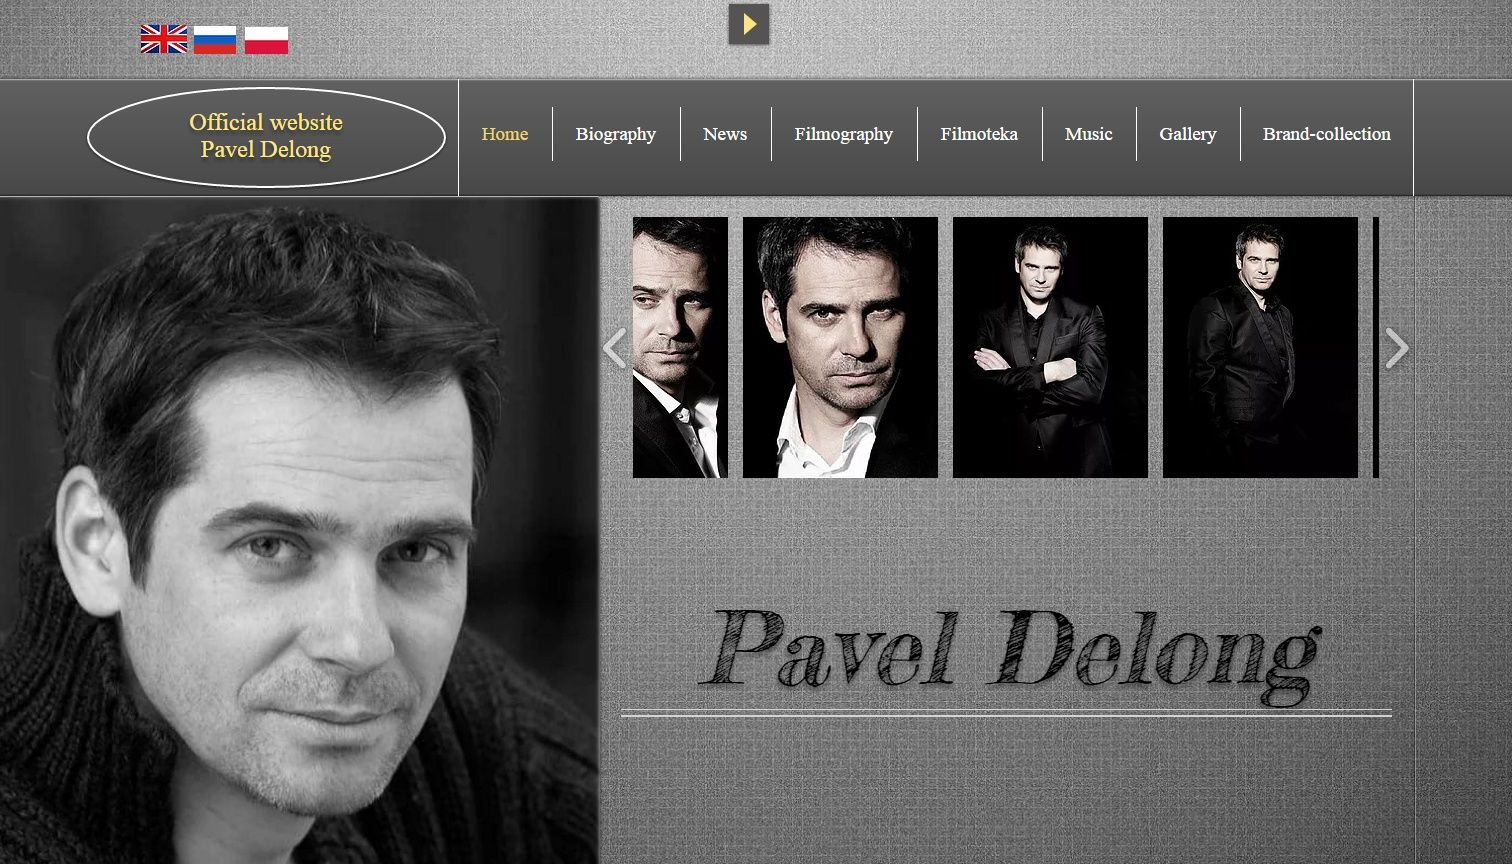 Pavel Delong (Paweł Deląg): the filmography and biography of the actor (photo)